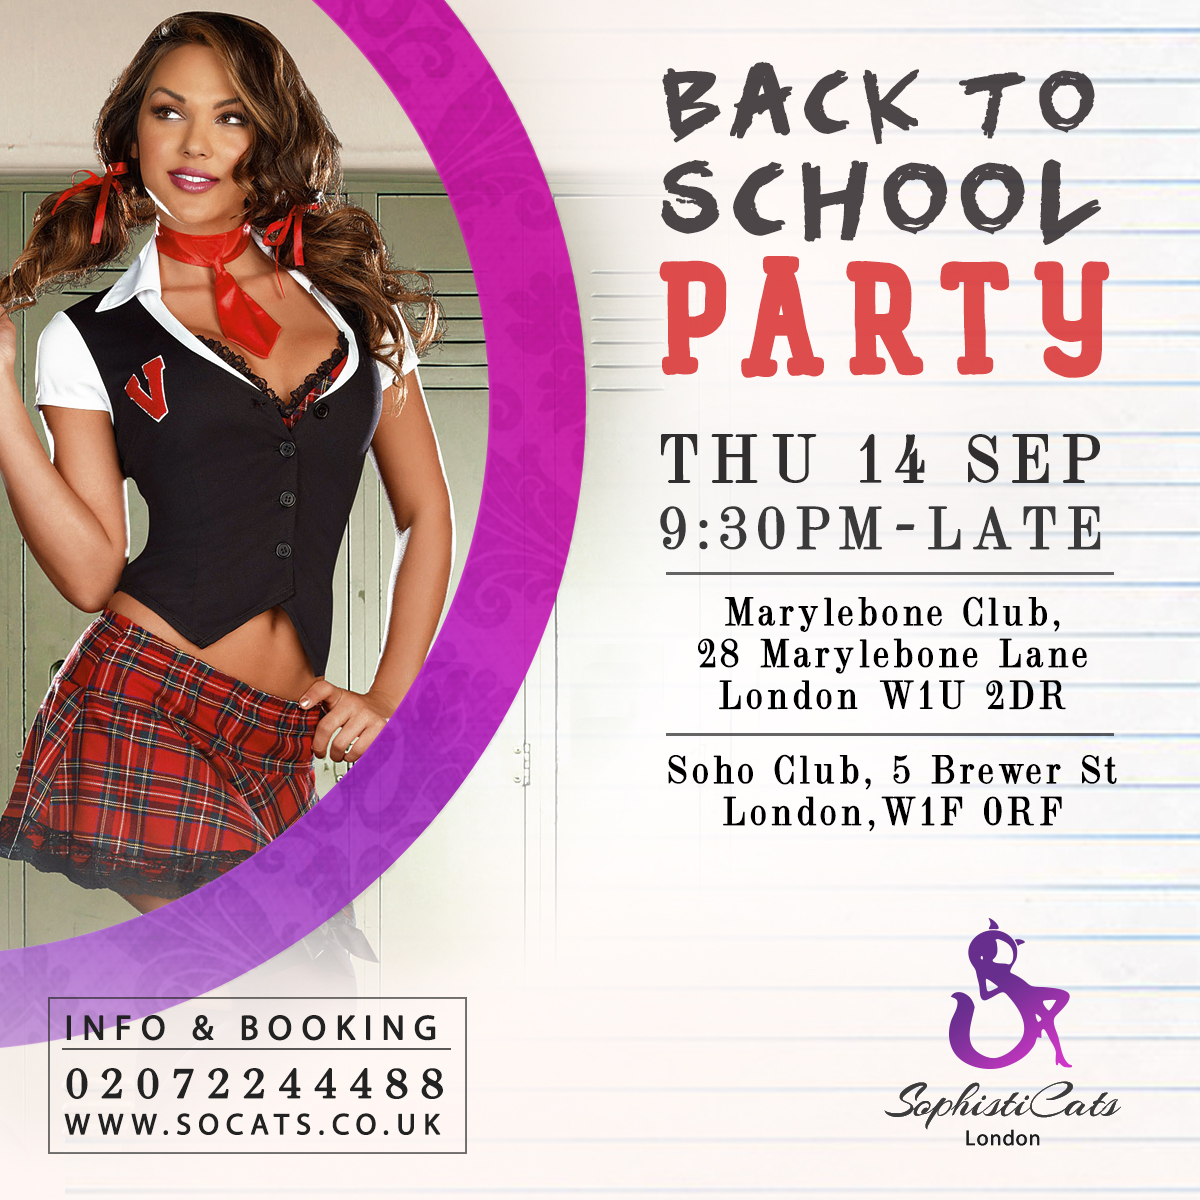 Back to school party_London